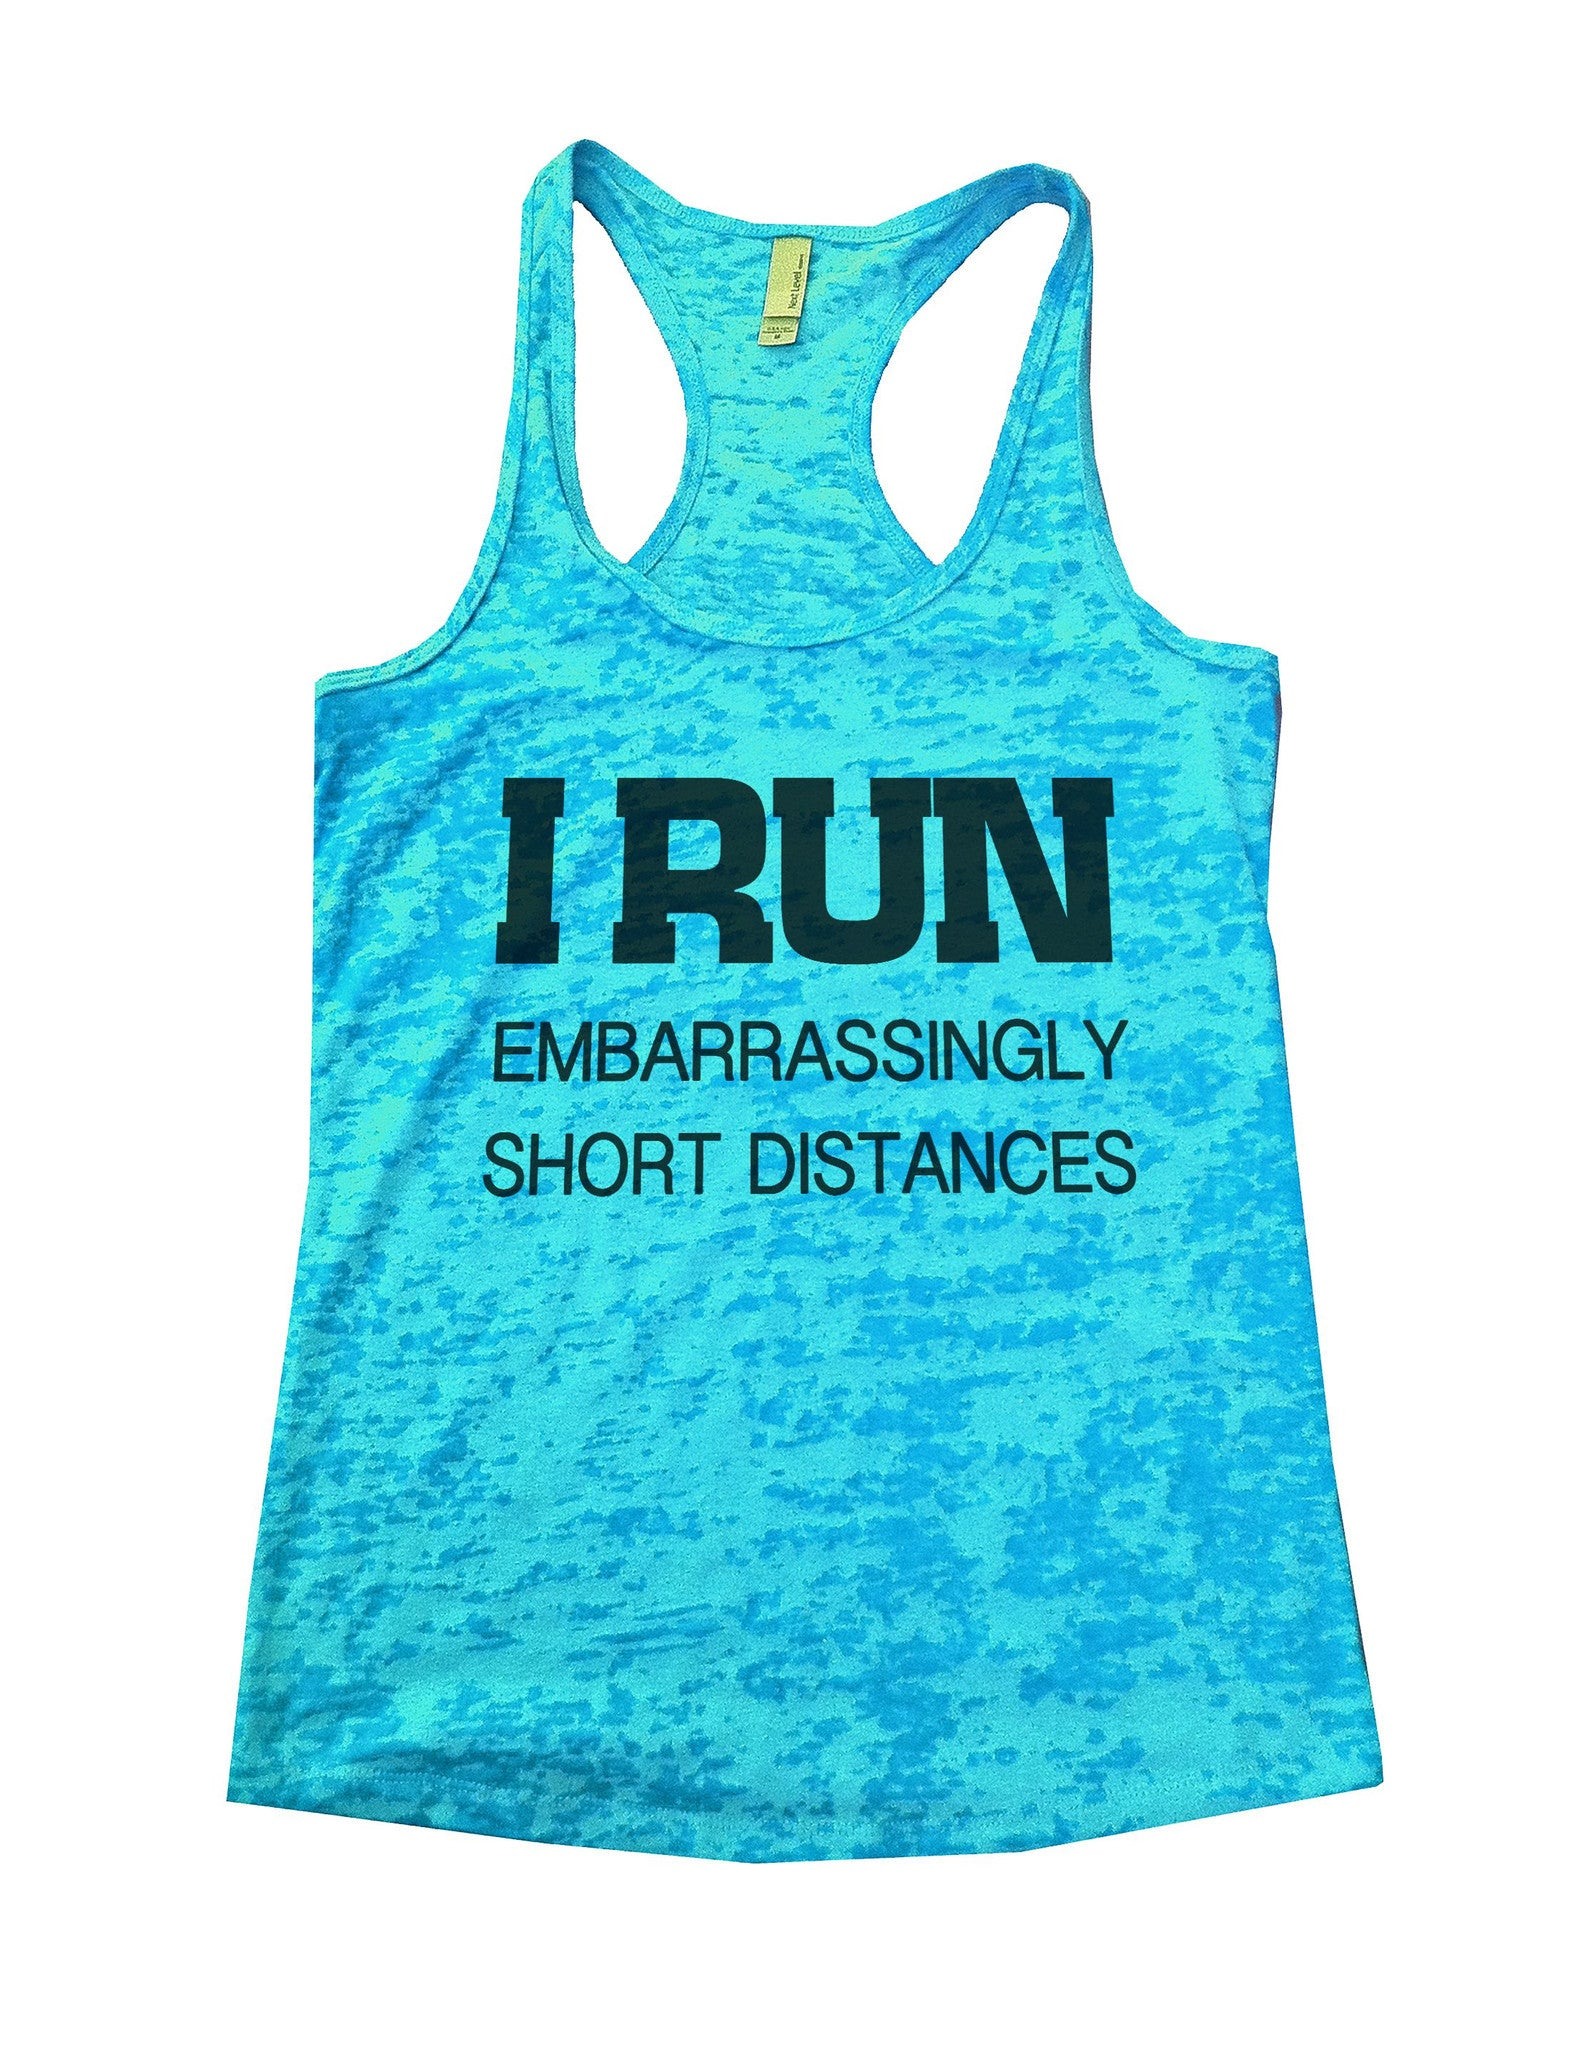 I Run Embarrassingly Short Distances Burnout Tank Top By BurnoutTankTops.com - 733 - Funny Shirts Tank Tops Burnouts and Triblends  - 4